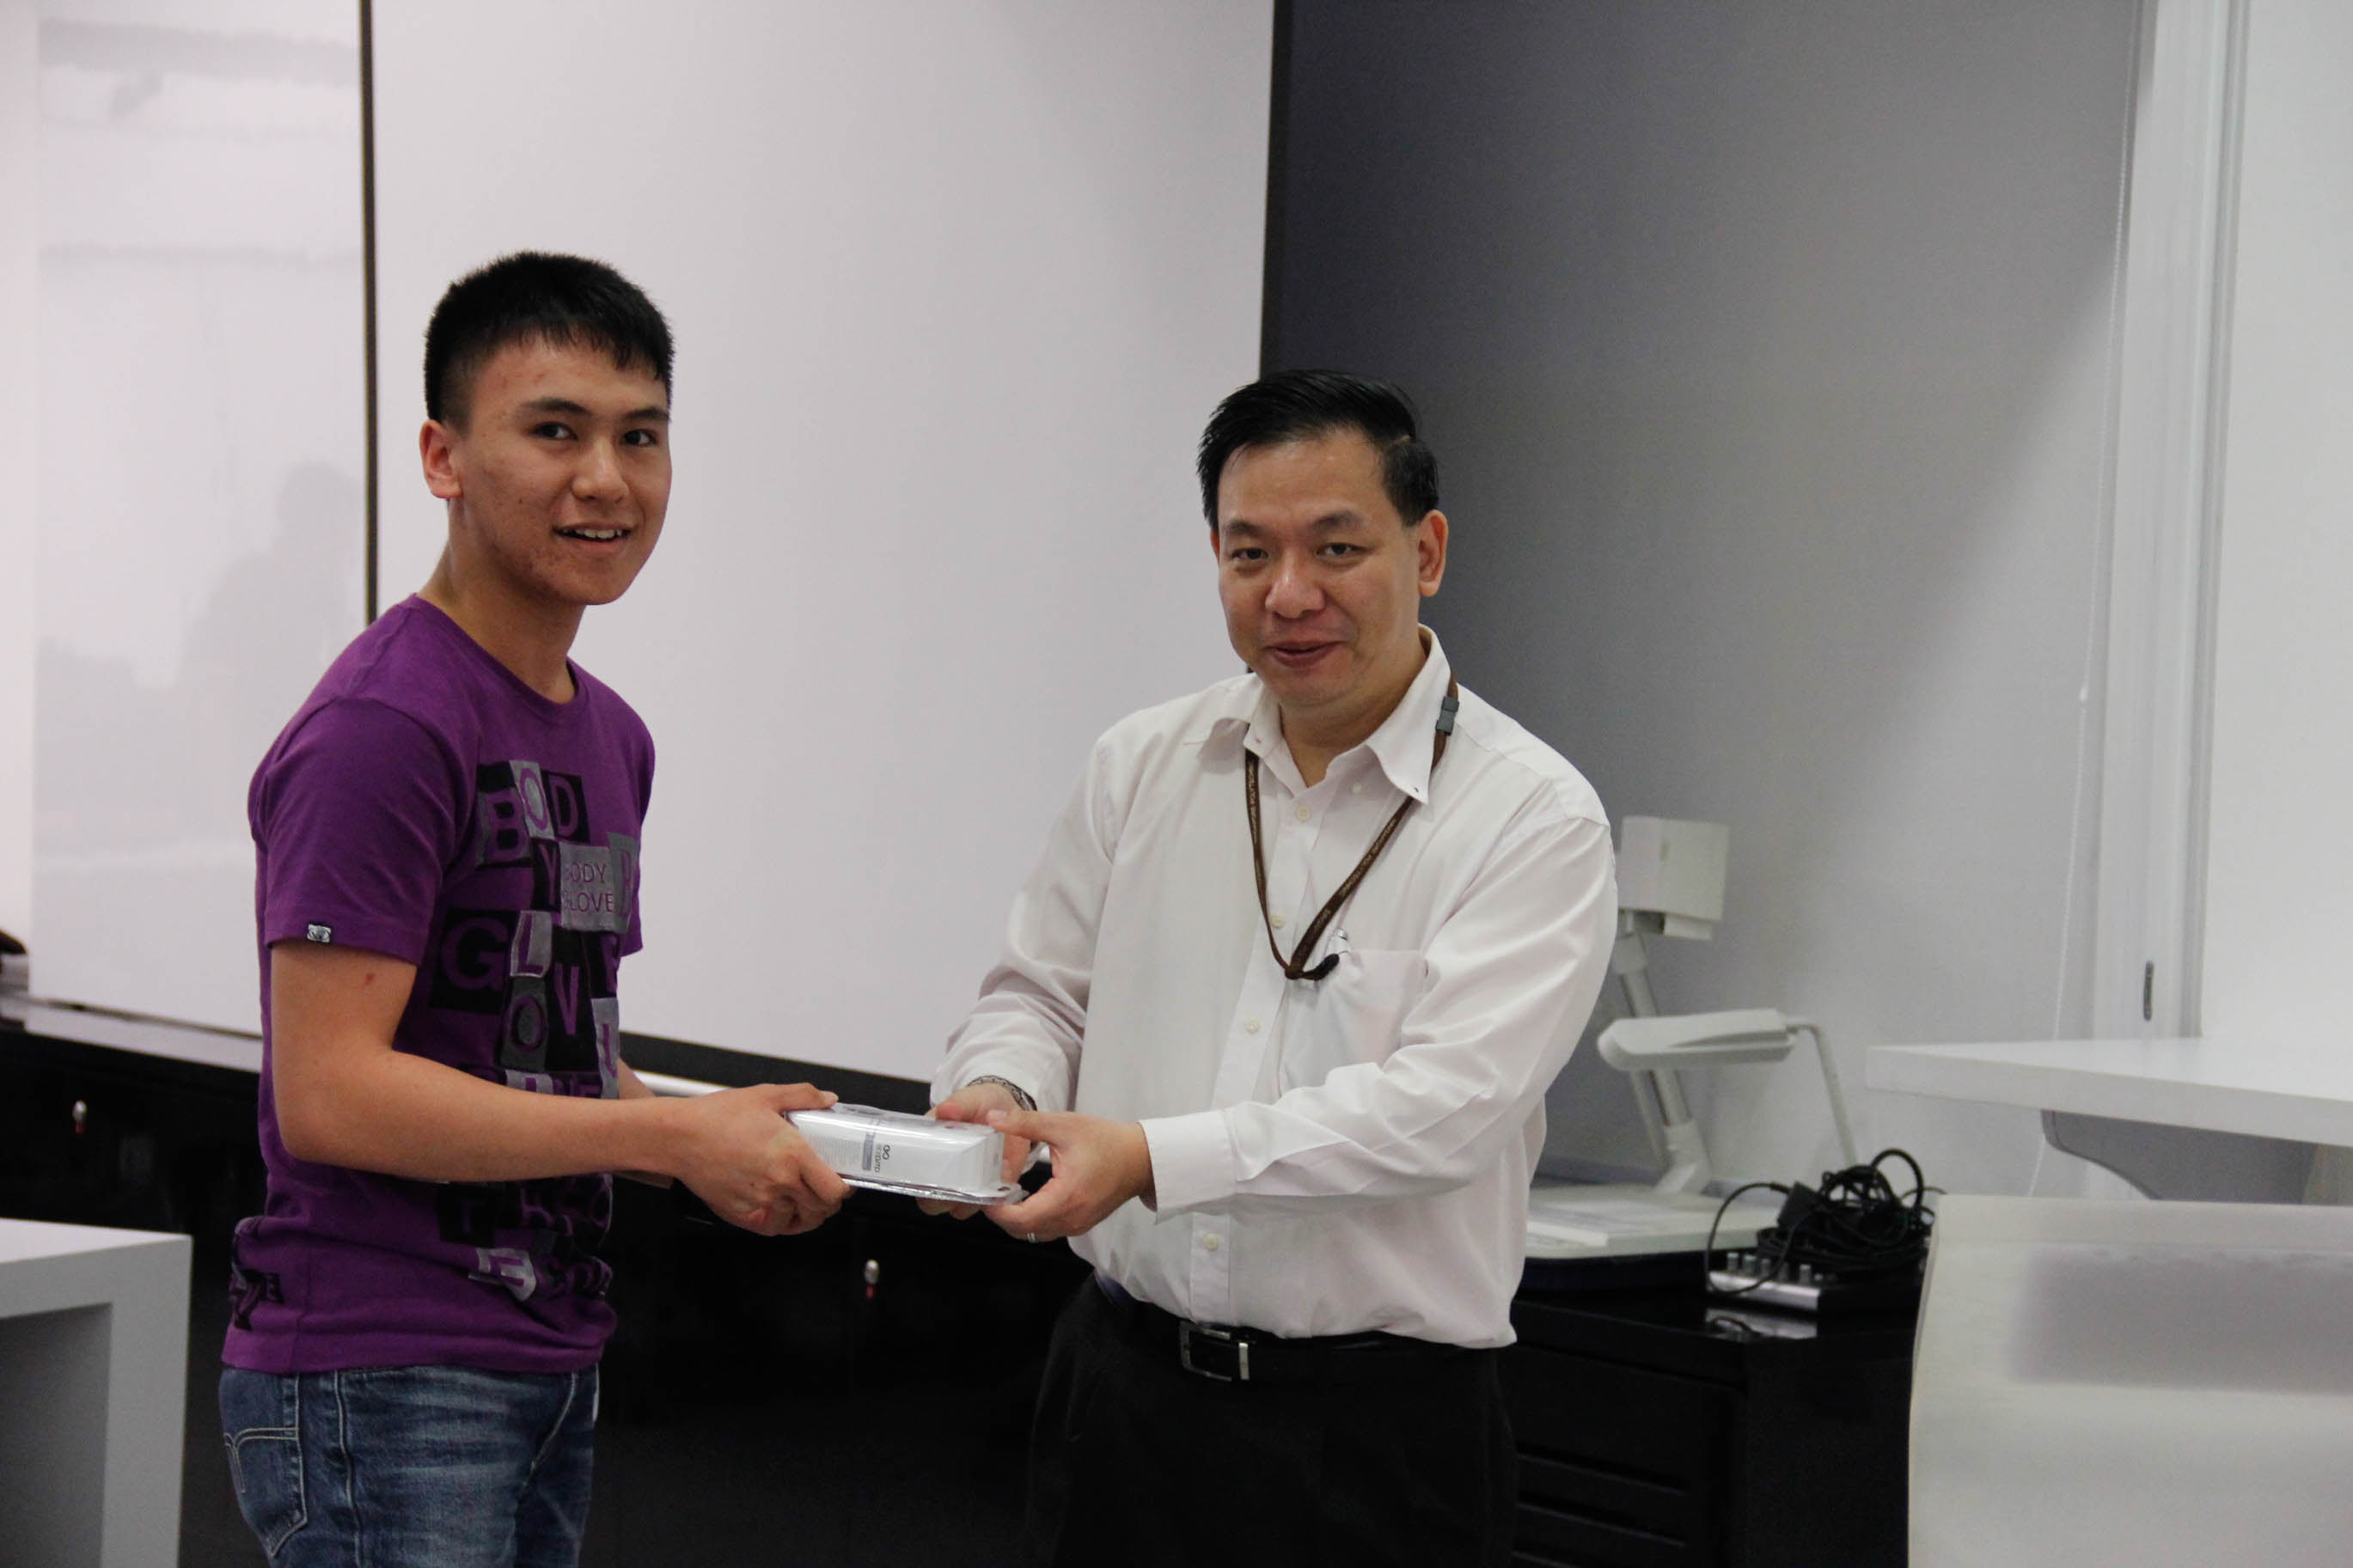 New ISACA Student Member and lucky draw winner Mustaqiim receiving prize from DISM lecturer Mr Samson Yeow